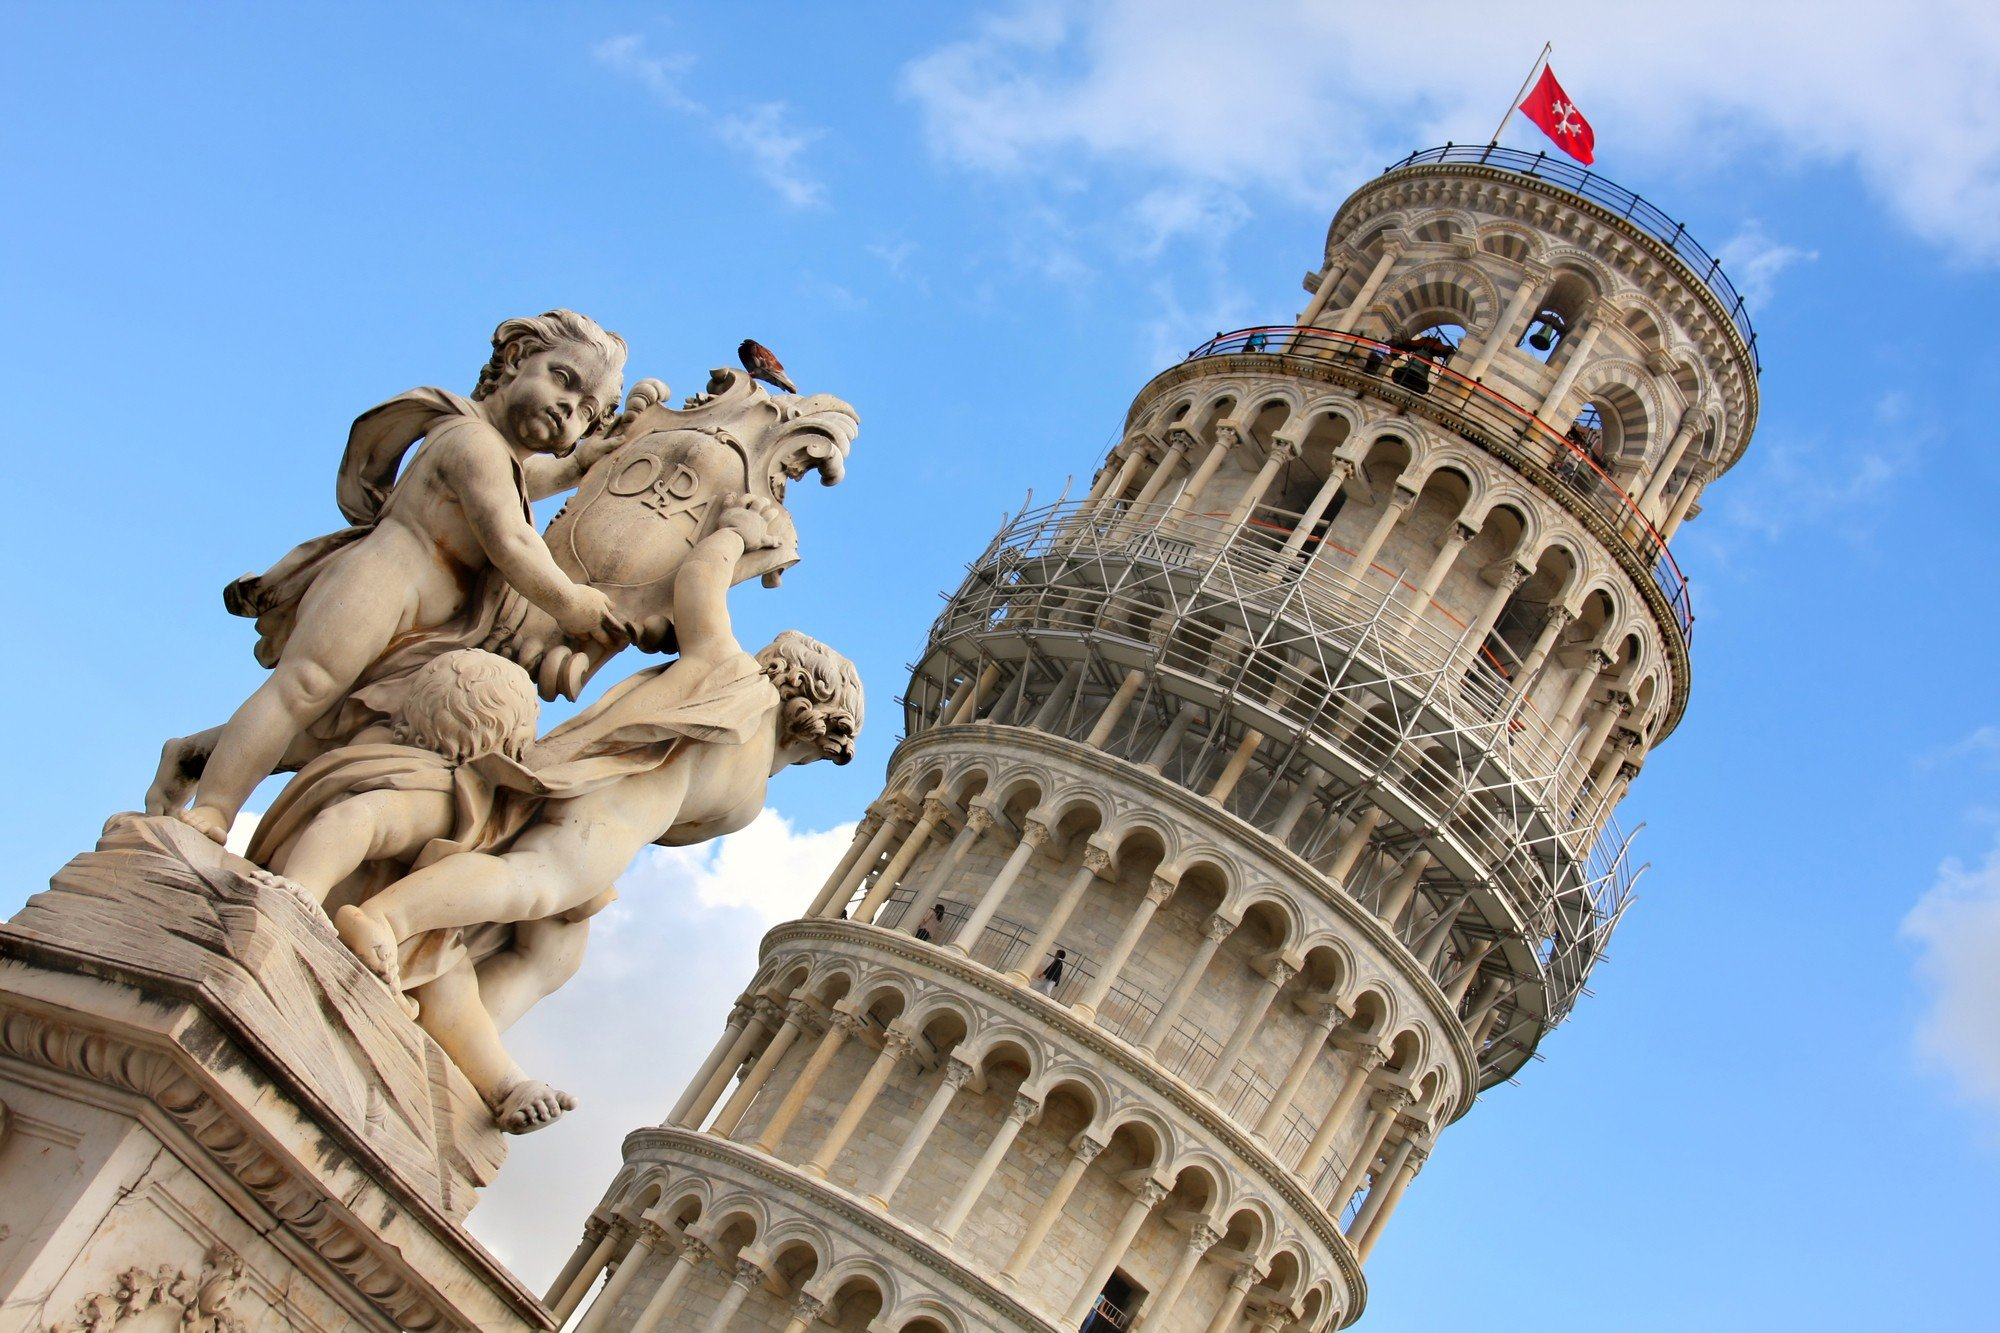 Leaning Tower and angel statue in Pisa